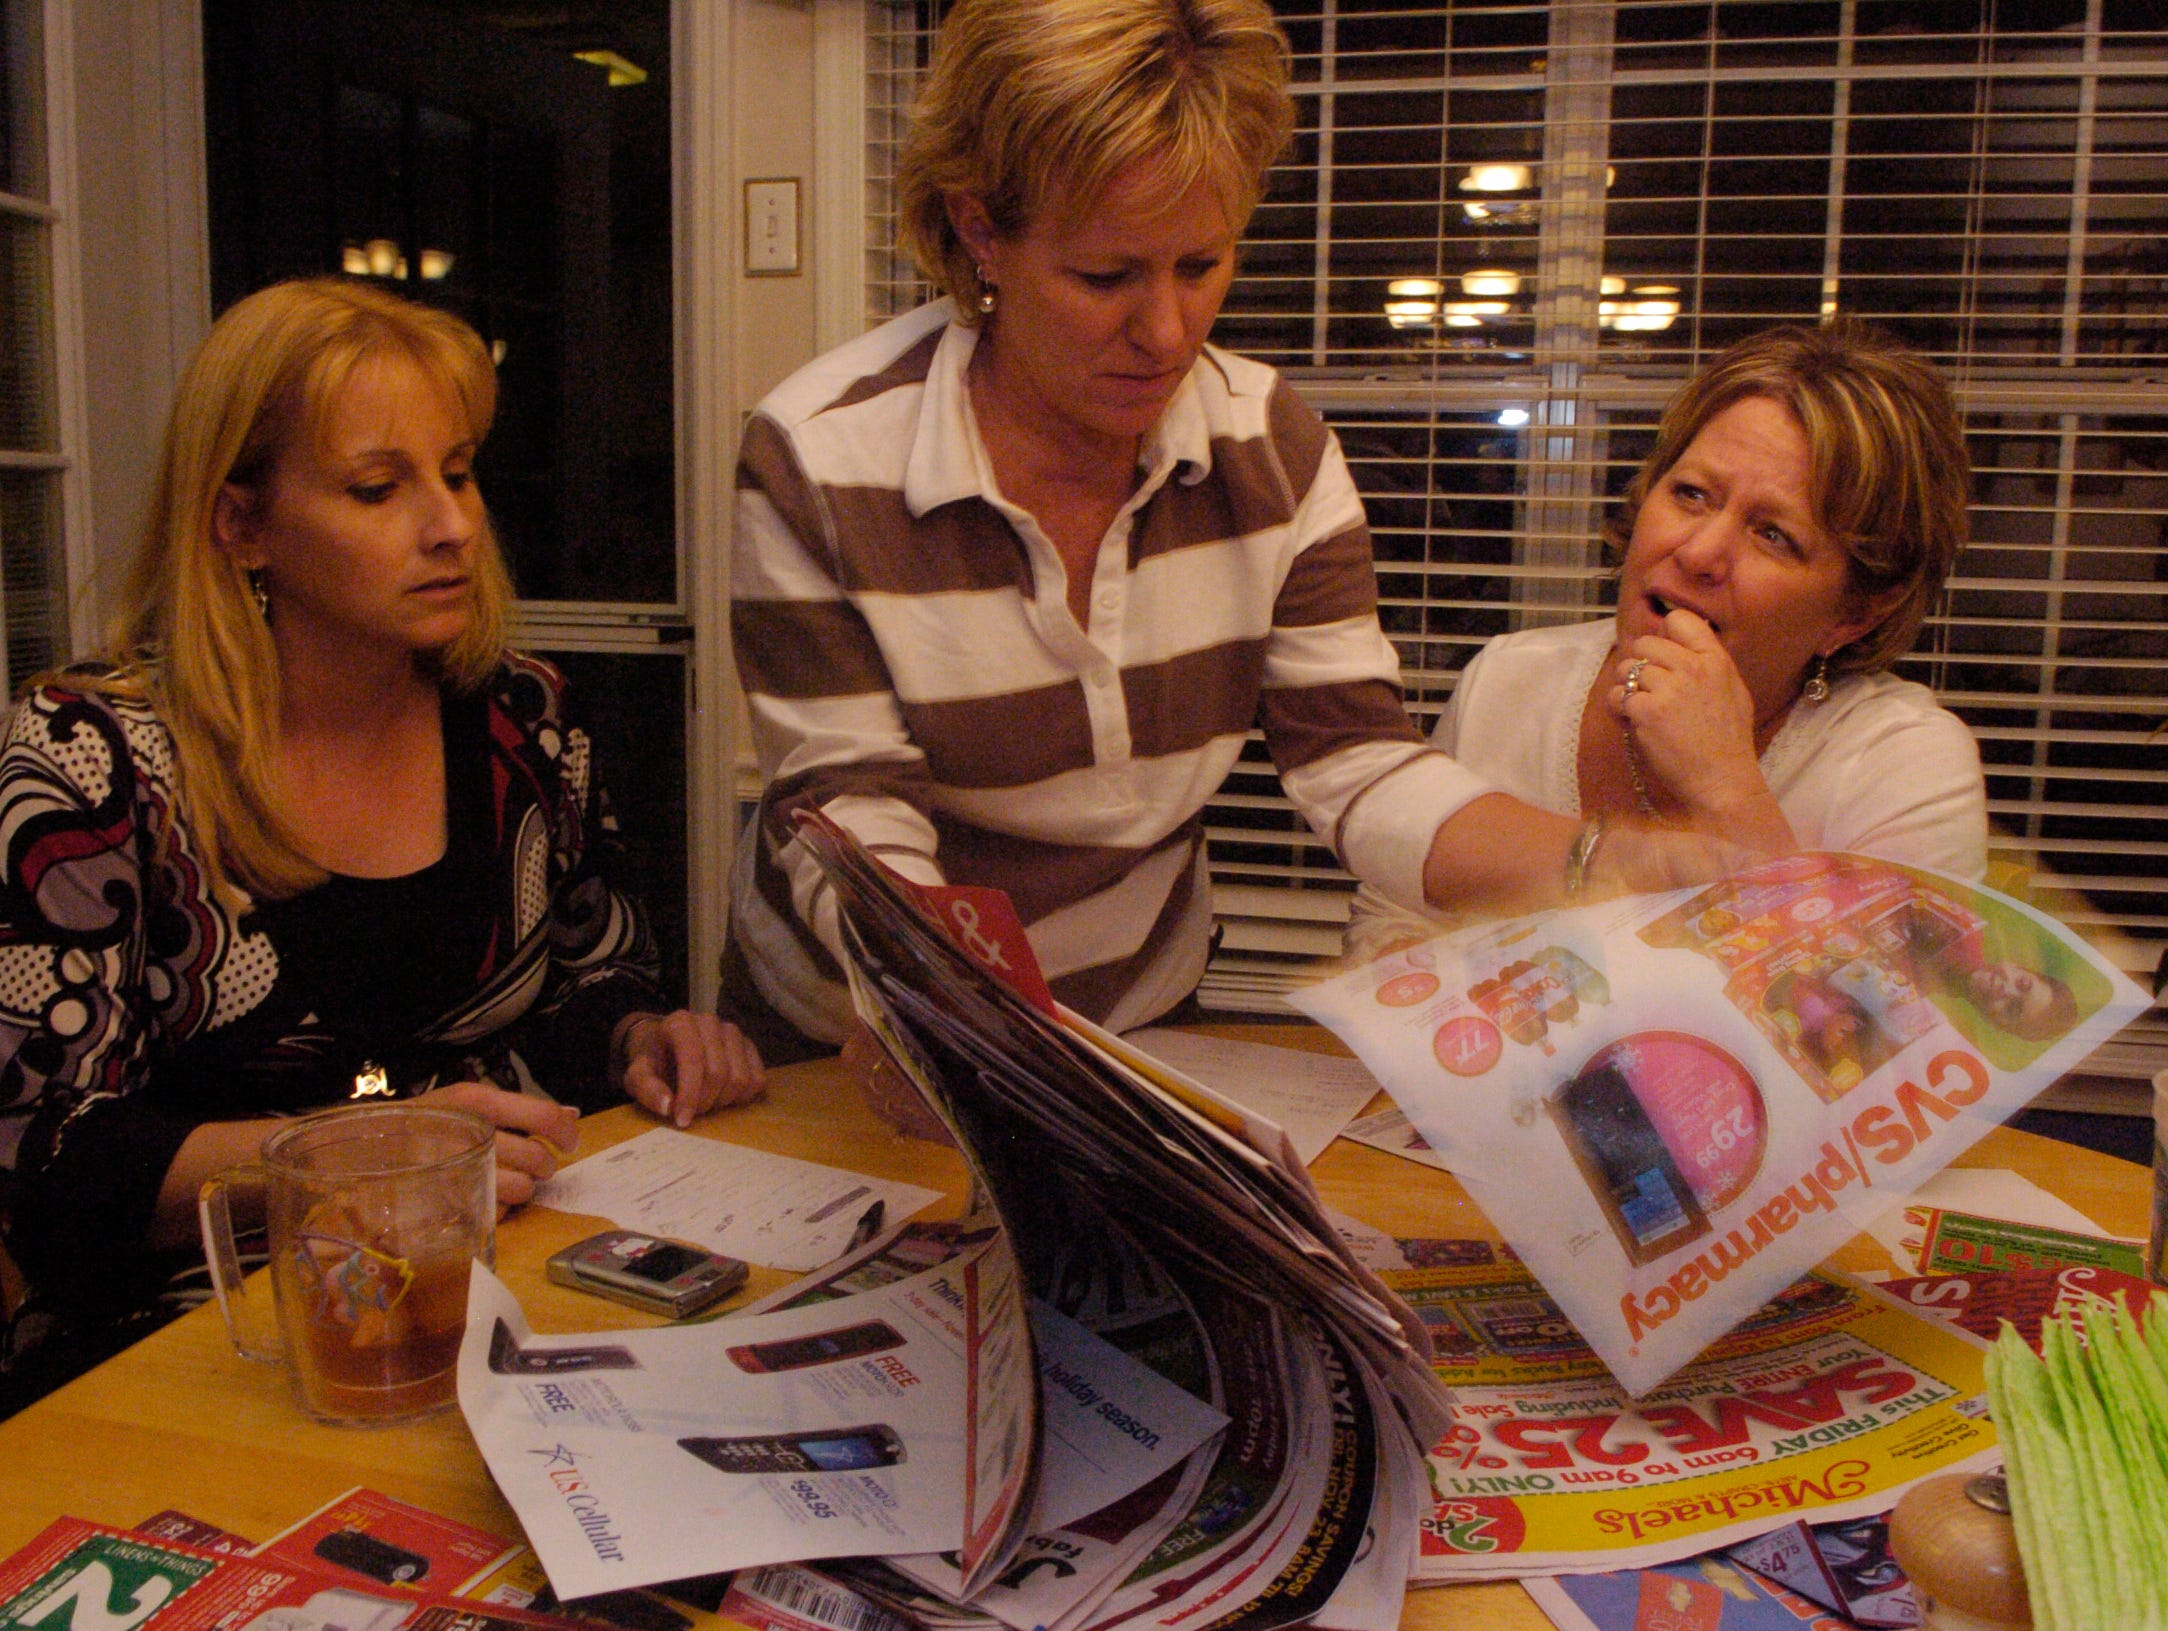 From left, Sheila Menning, Sondra Day and her twin sister, Ronda Coomer, read Thanksgiving day newspaper ads on Thursday. The women are planning the annual Morgan family Black Friday shopping trip.